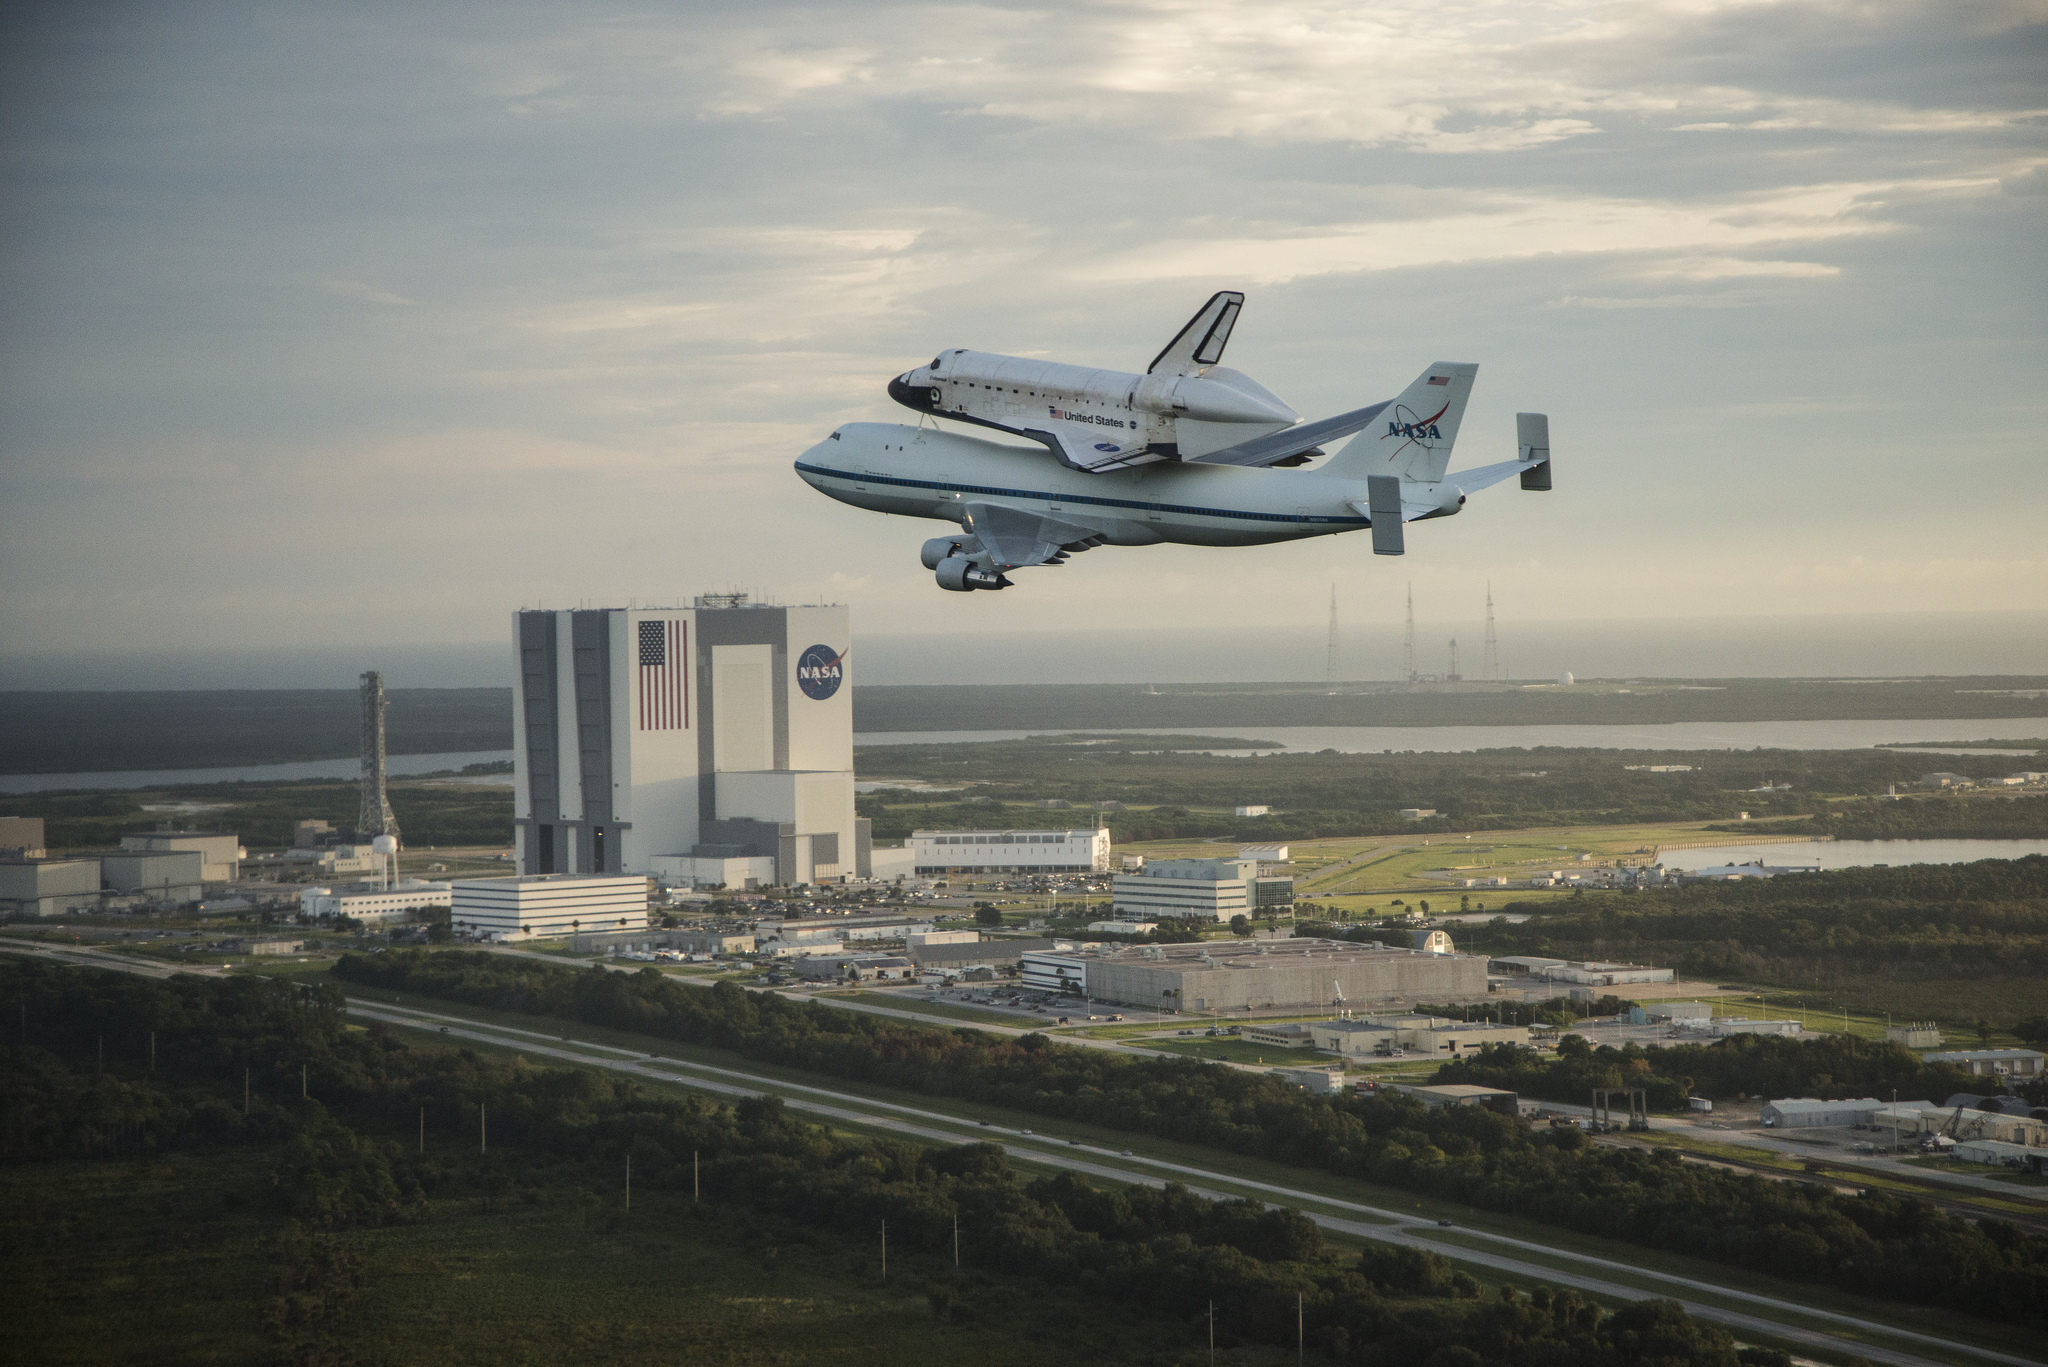 space shuttle vehicles - photo #43